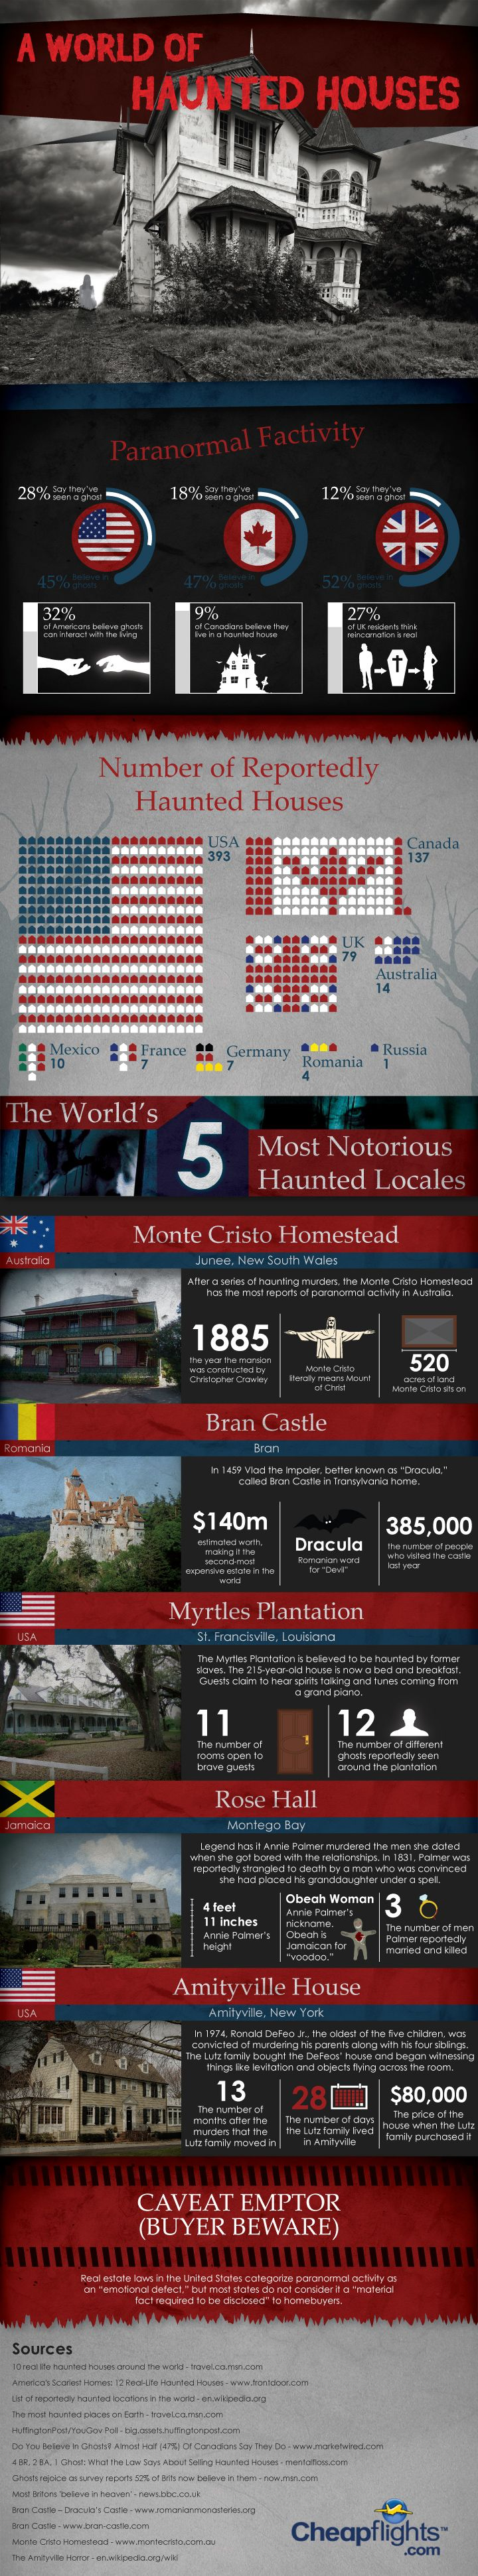 A world of haunted houses